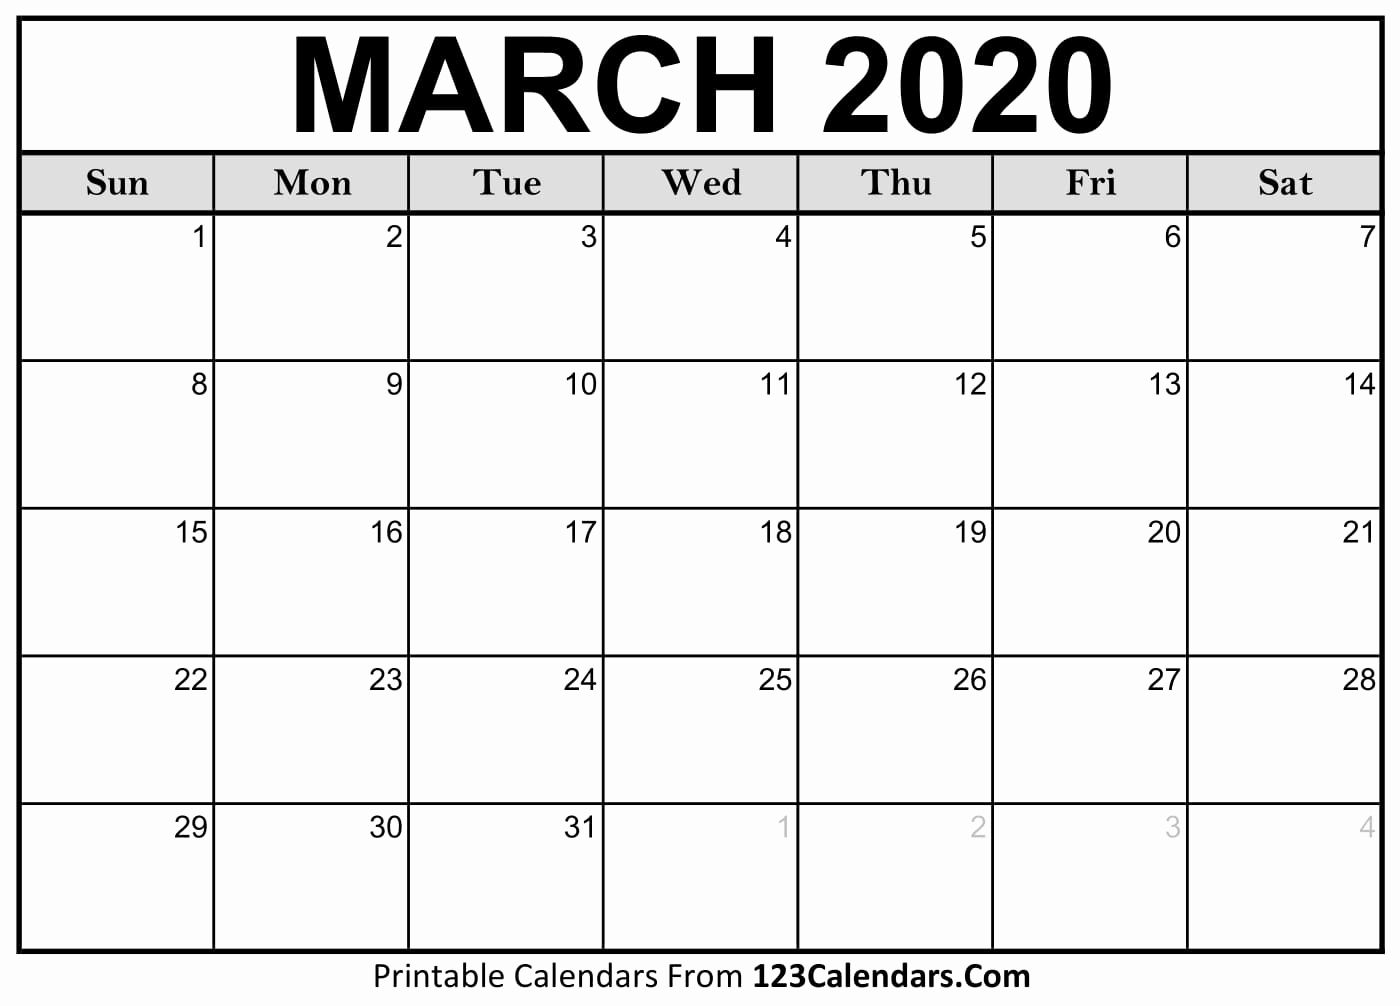 Printable Calendar March 2020 In 2020 | Calendar Printables within 2021 Rut Predictor